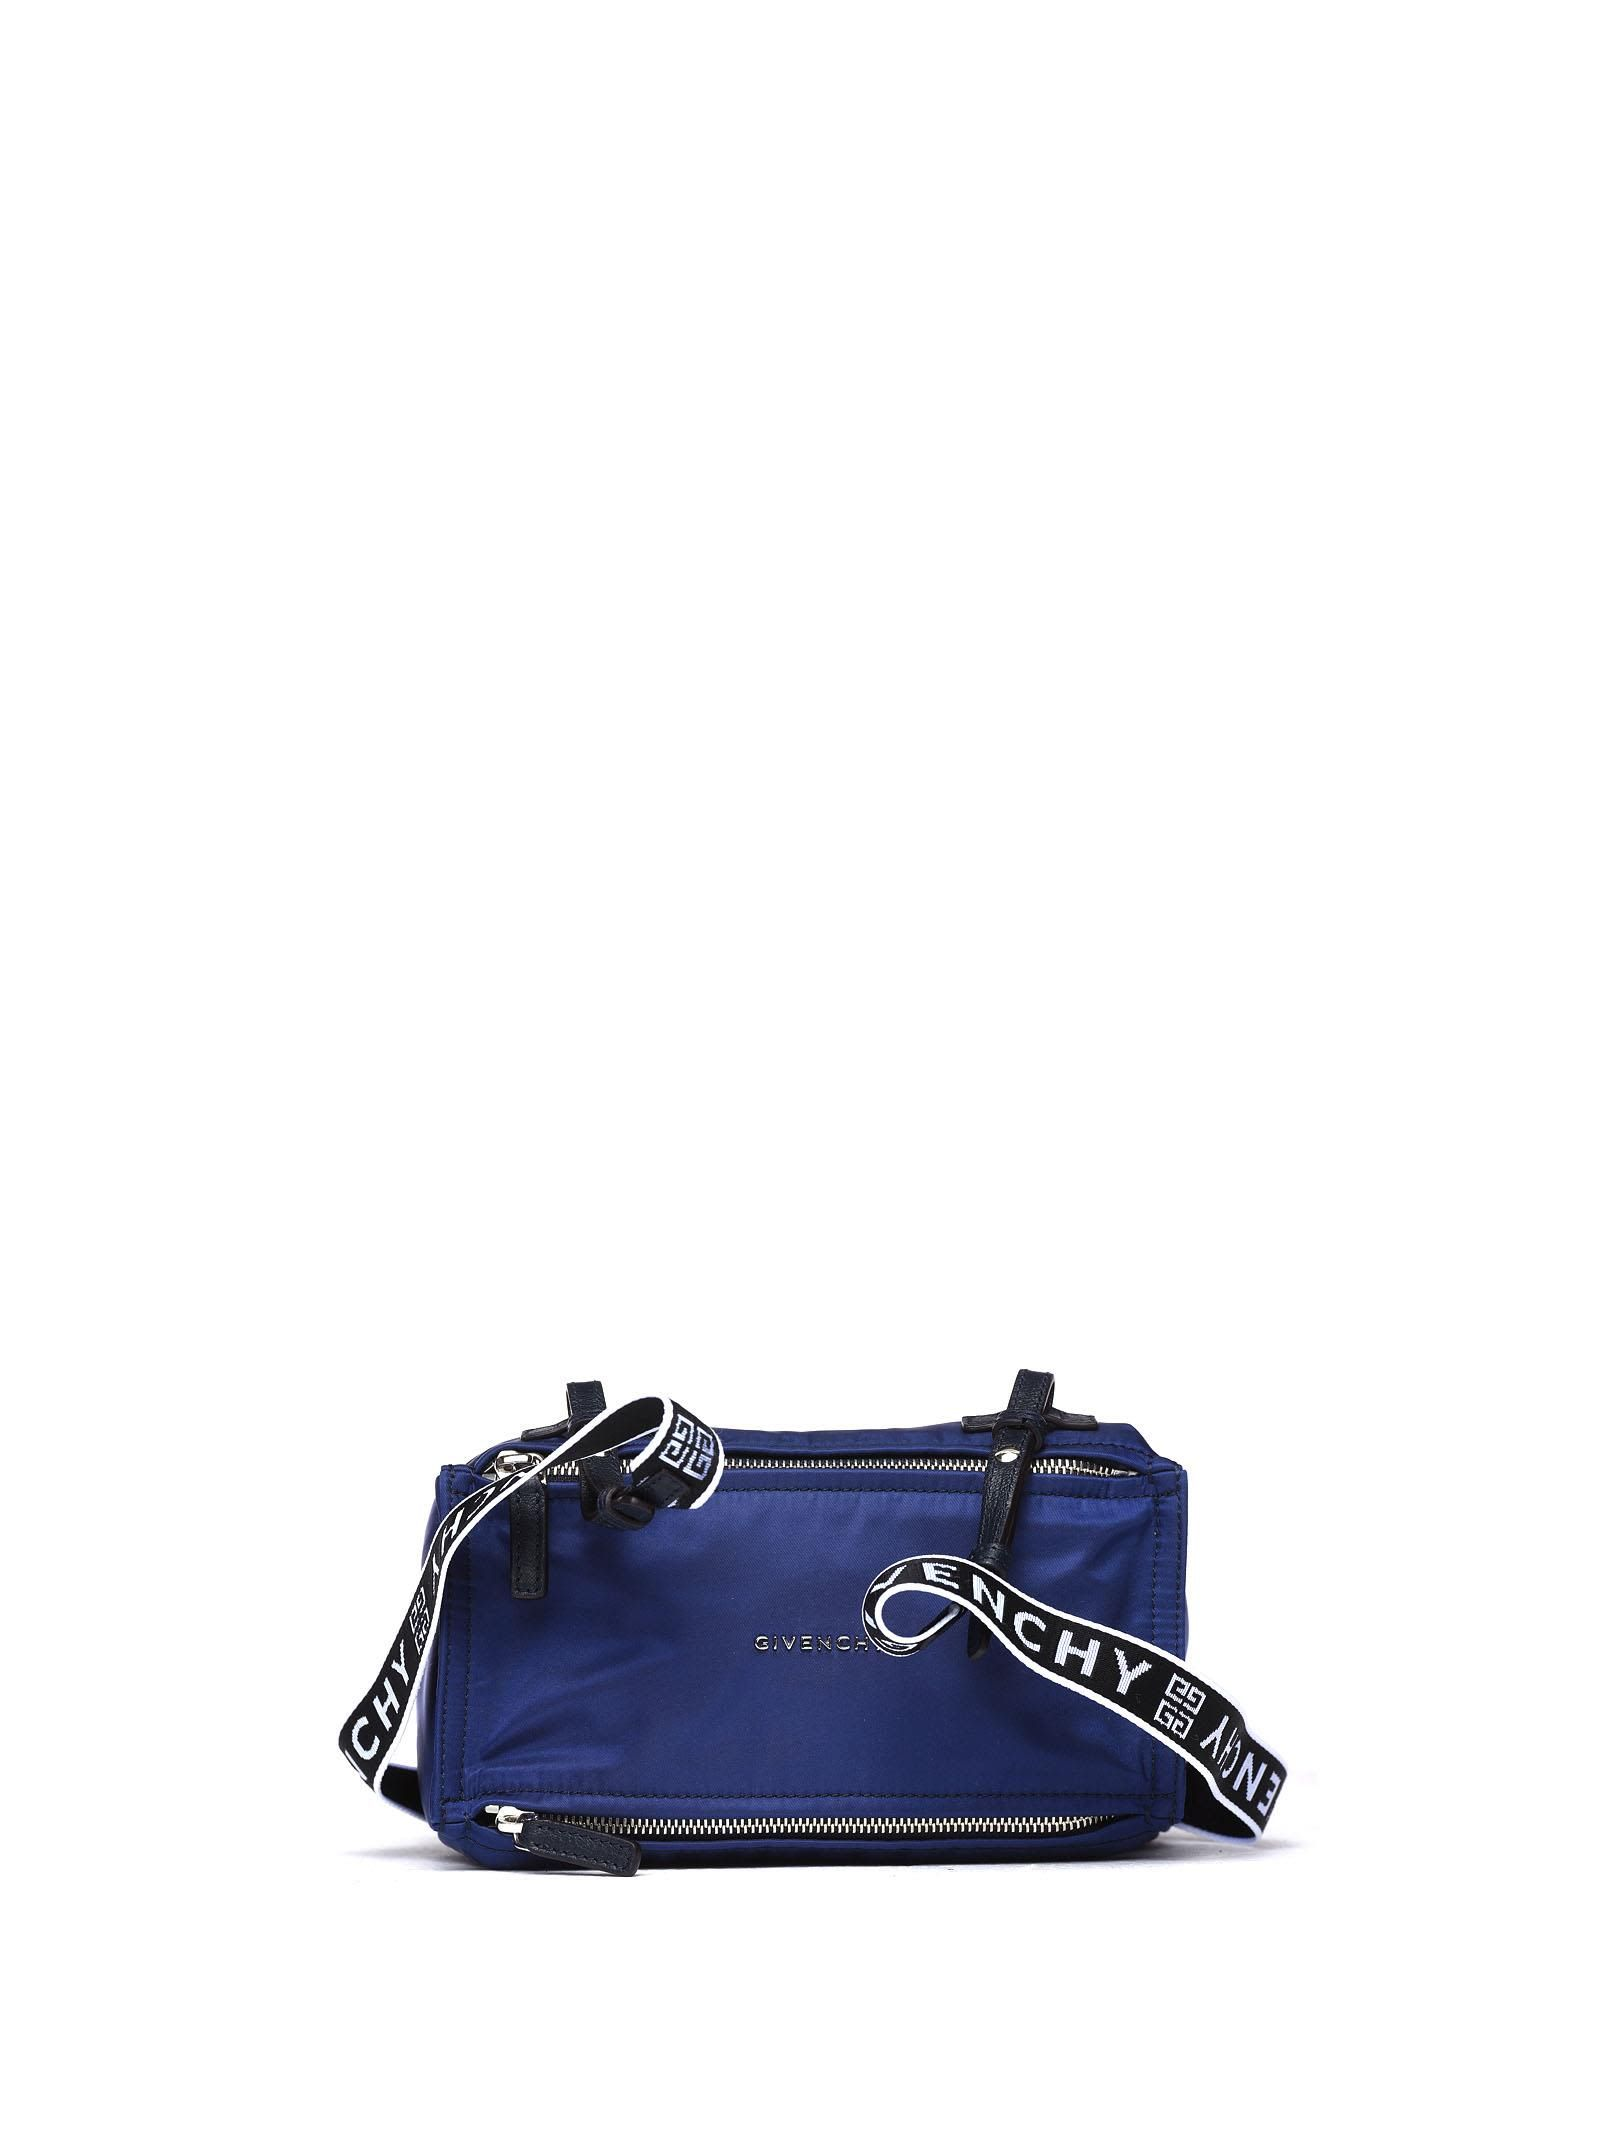 GIVENCHY PANDORA MINI 4G HANDLE BAG IN BLUE NYLON AND LEATHER.  givenchy   bags  shoulder bags  hand bags  nylon  leather 4ba543fddbaa5